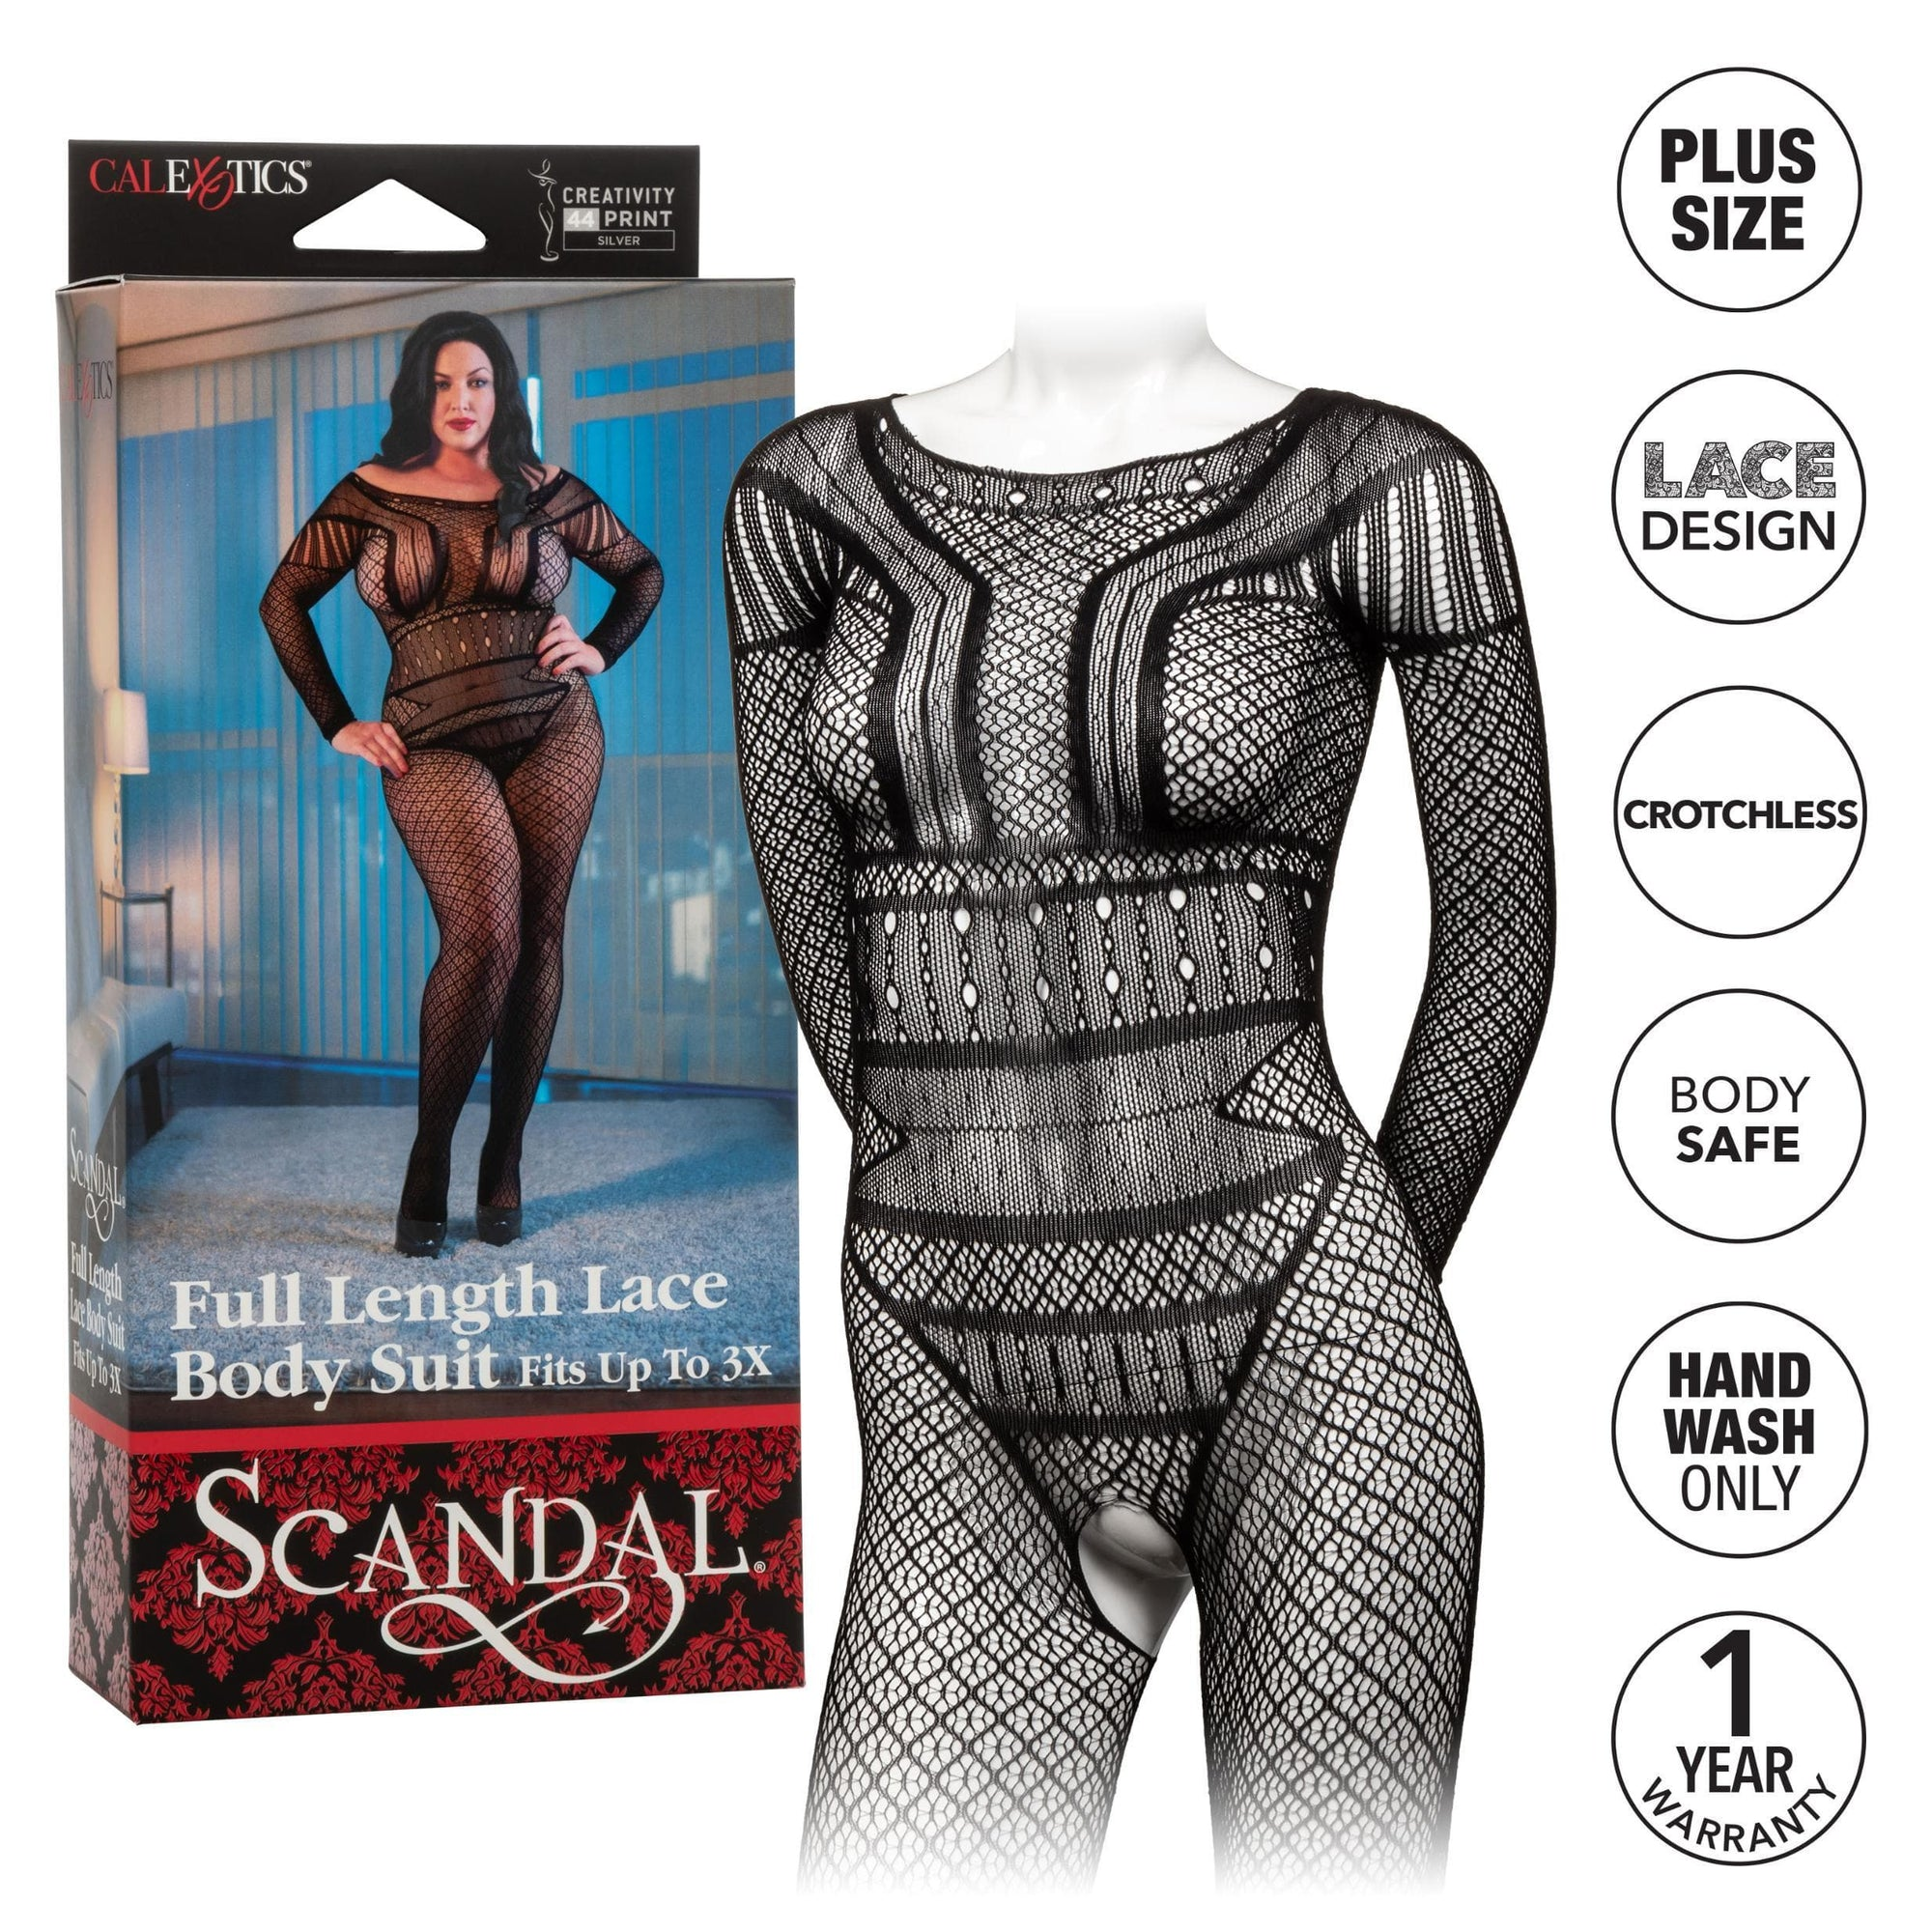 calexotics   scandal plus size full length lace body suit plus size black